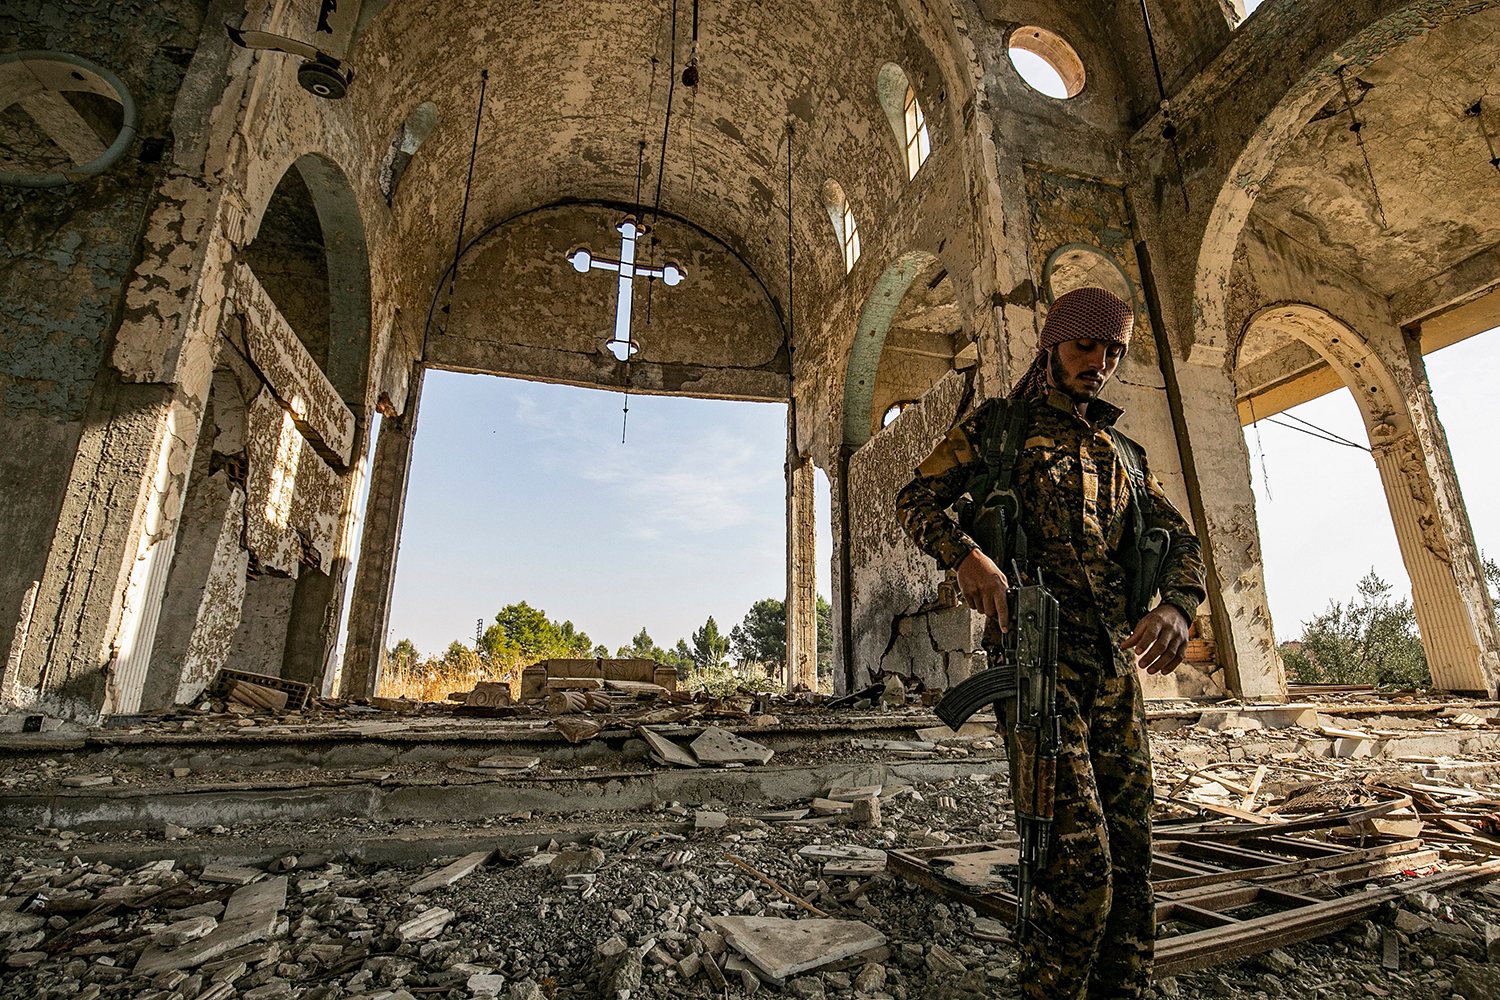 A member of the Khabour Guards (MNK) Assyrian Syrian militia, affiliated with the Syrian Democratic Forces (SDF), walks in the ruins of the Assyrian Church of the Virgin Mary, which was previously destroyed by Islamic State fighters, in Tal Nasri in Syria's northeastern Hasakah province on Nov. 15. DELIL SOULEIMAN/AFP via Getty Images